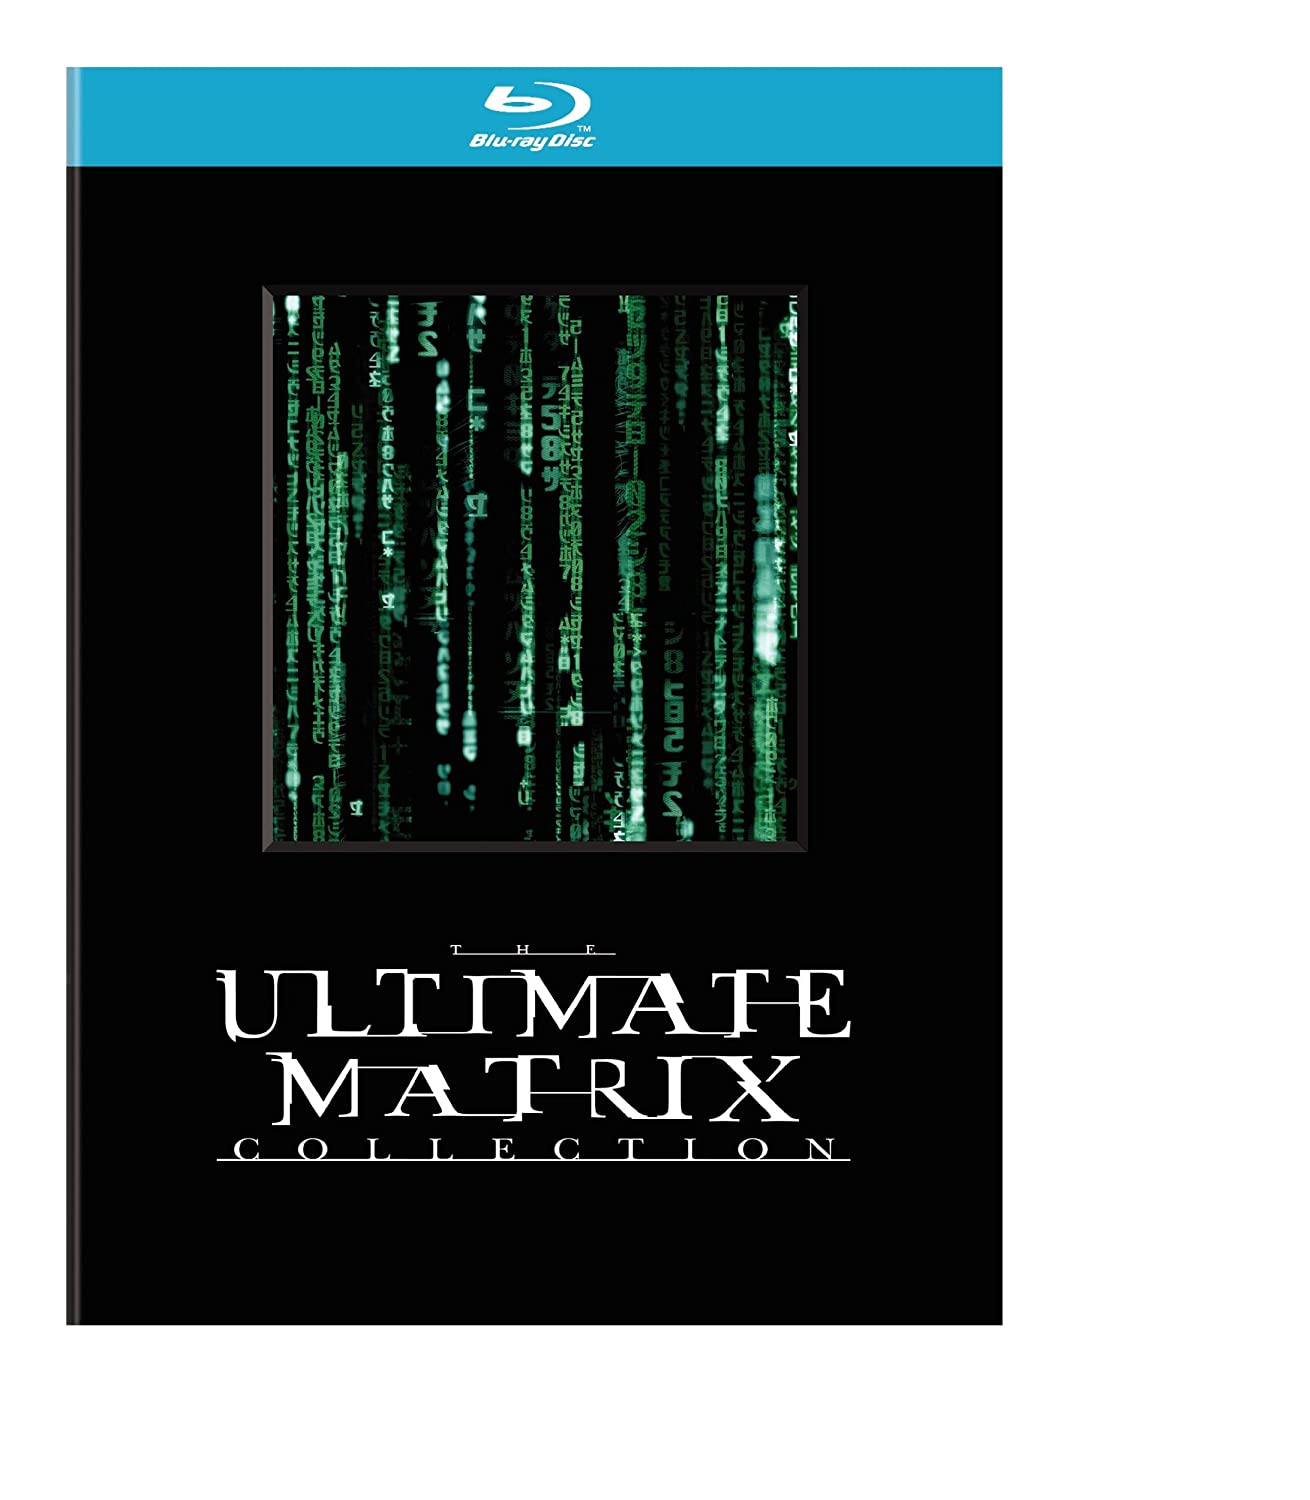 The Ultimate Matrix Collection [Blu-ray] $24.49